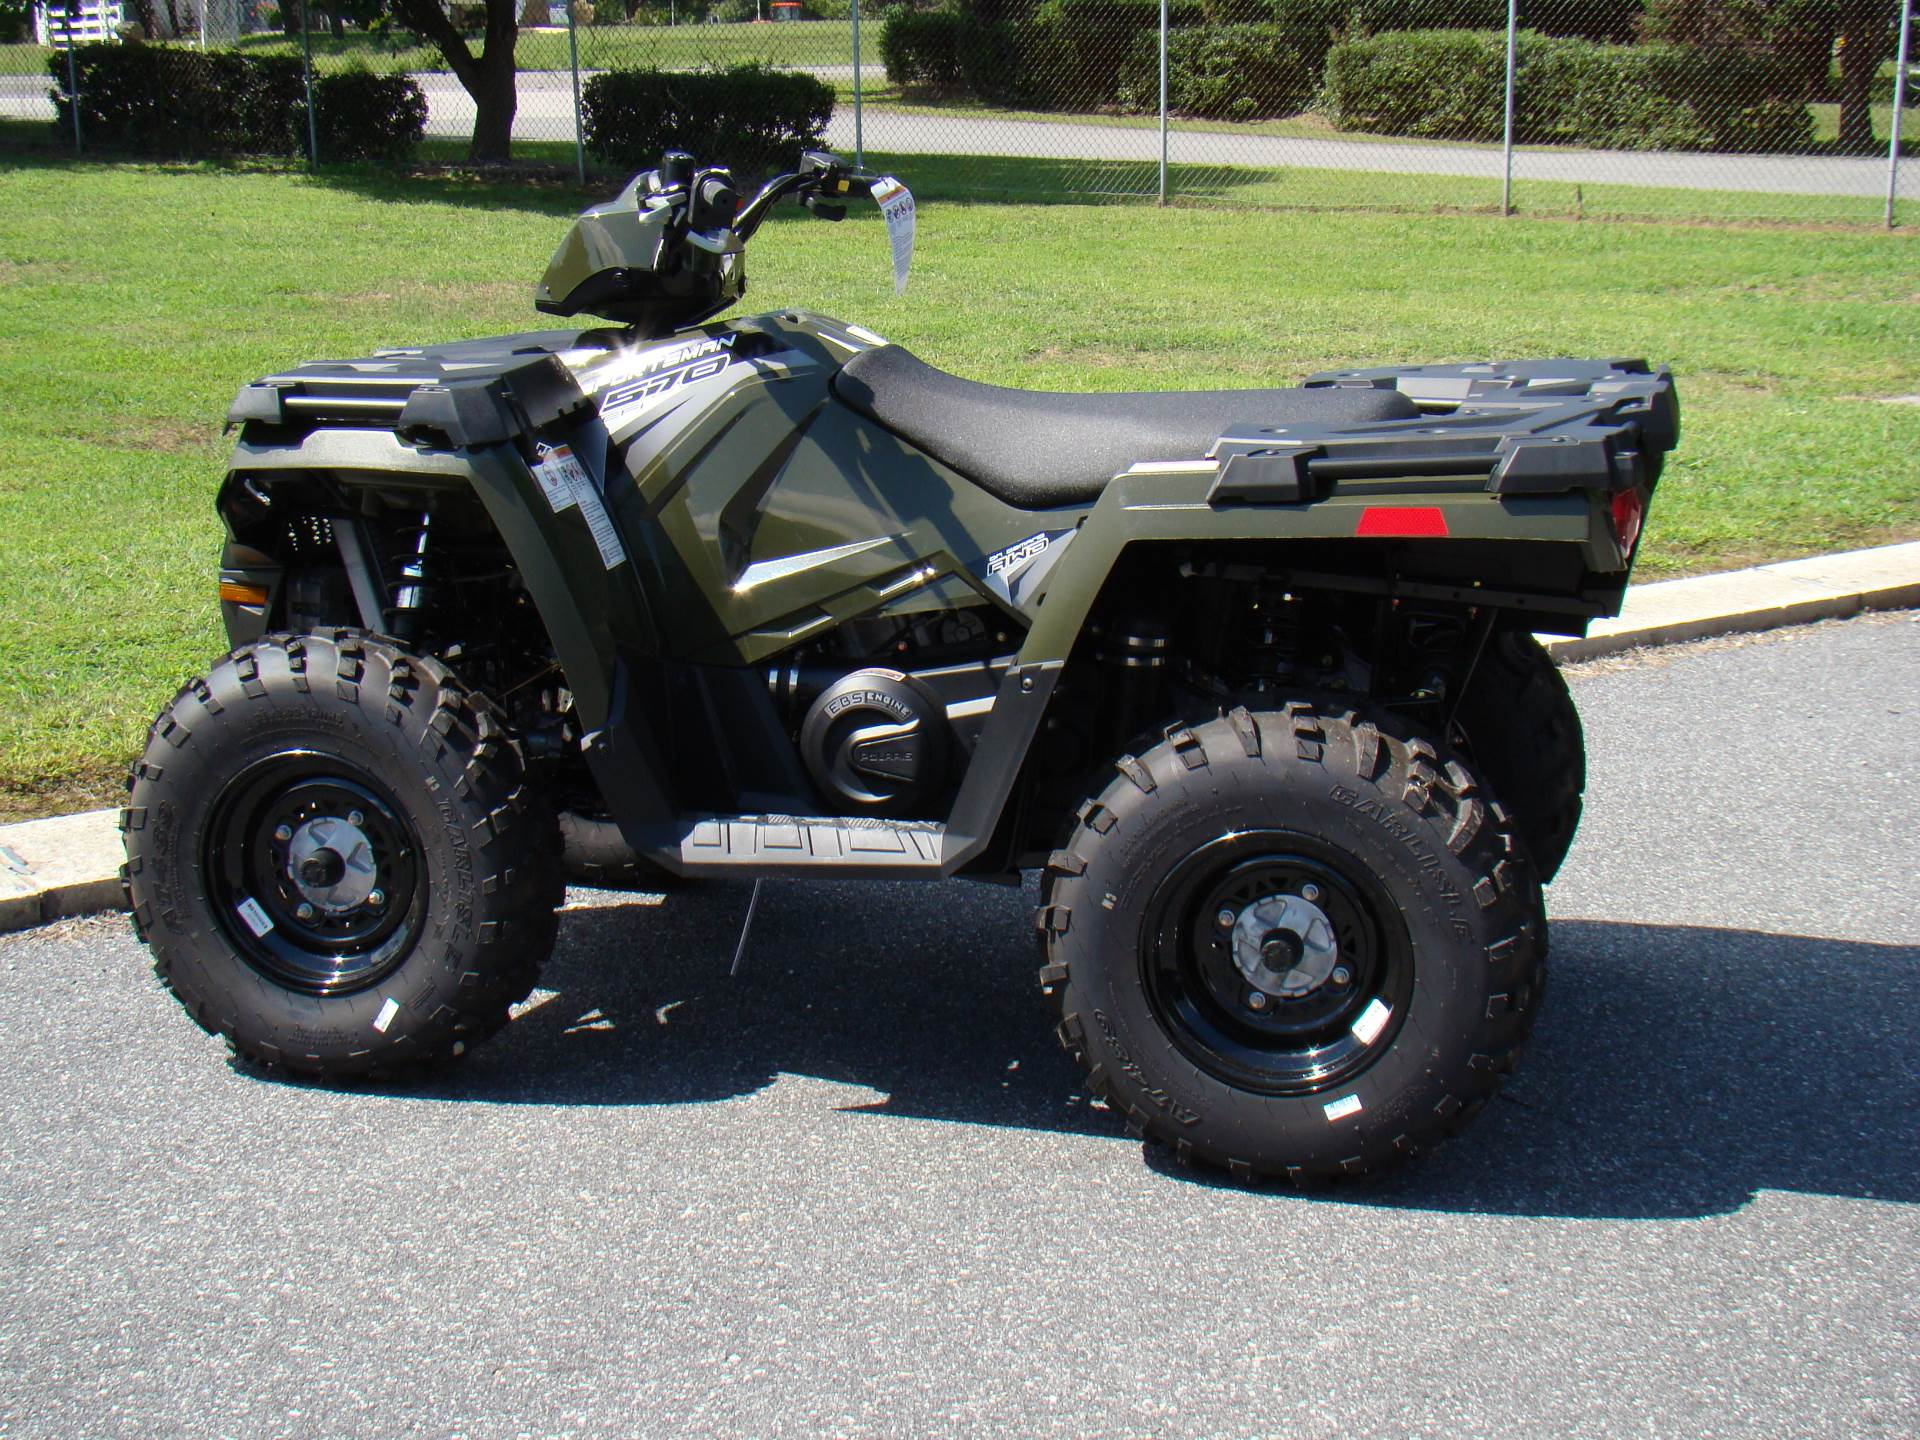 2017 Polaris 570 SPMN in Hayes, Virginia